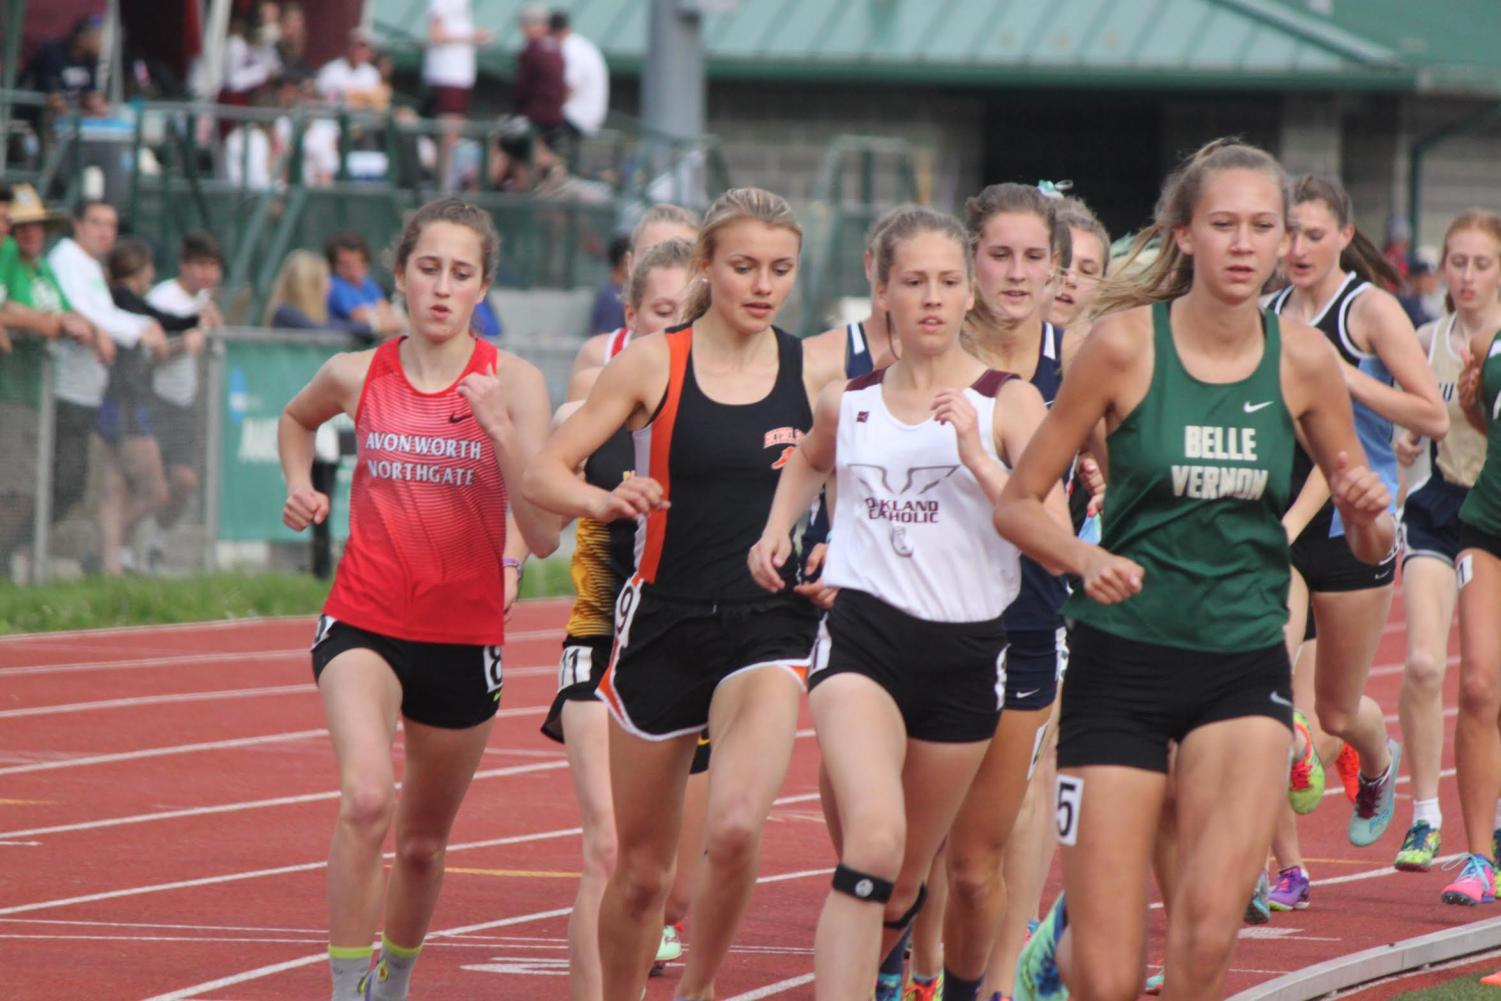 Emily Carter competes in the 3200 meter run at the WPIAL Championships on Thursday, May 16.